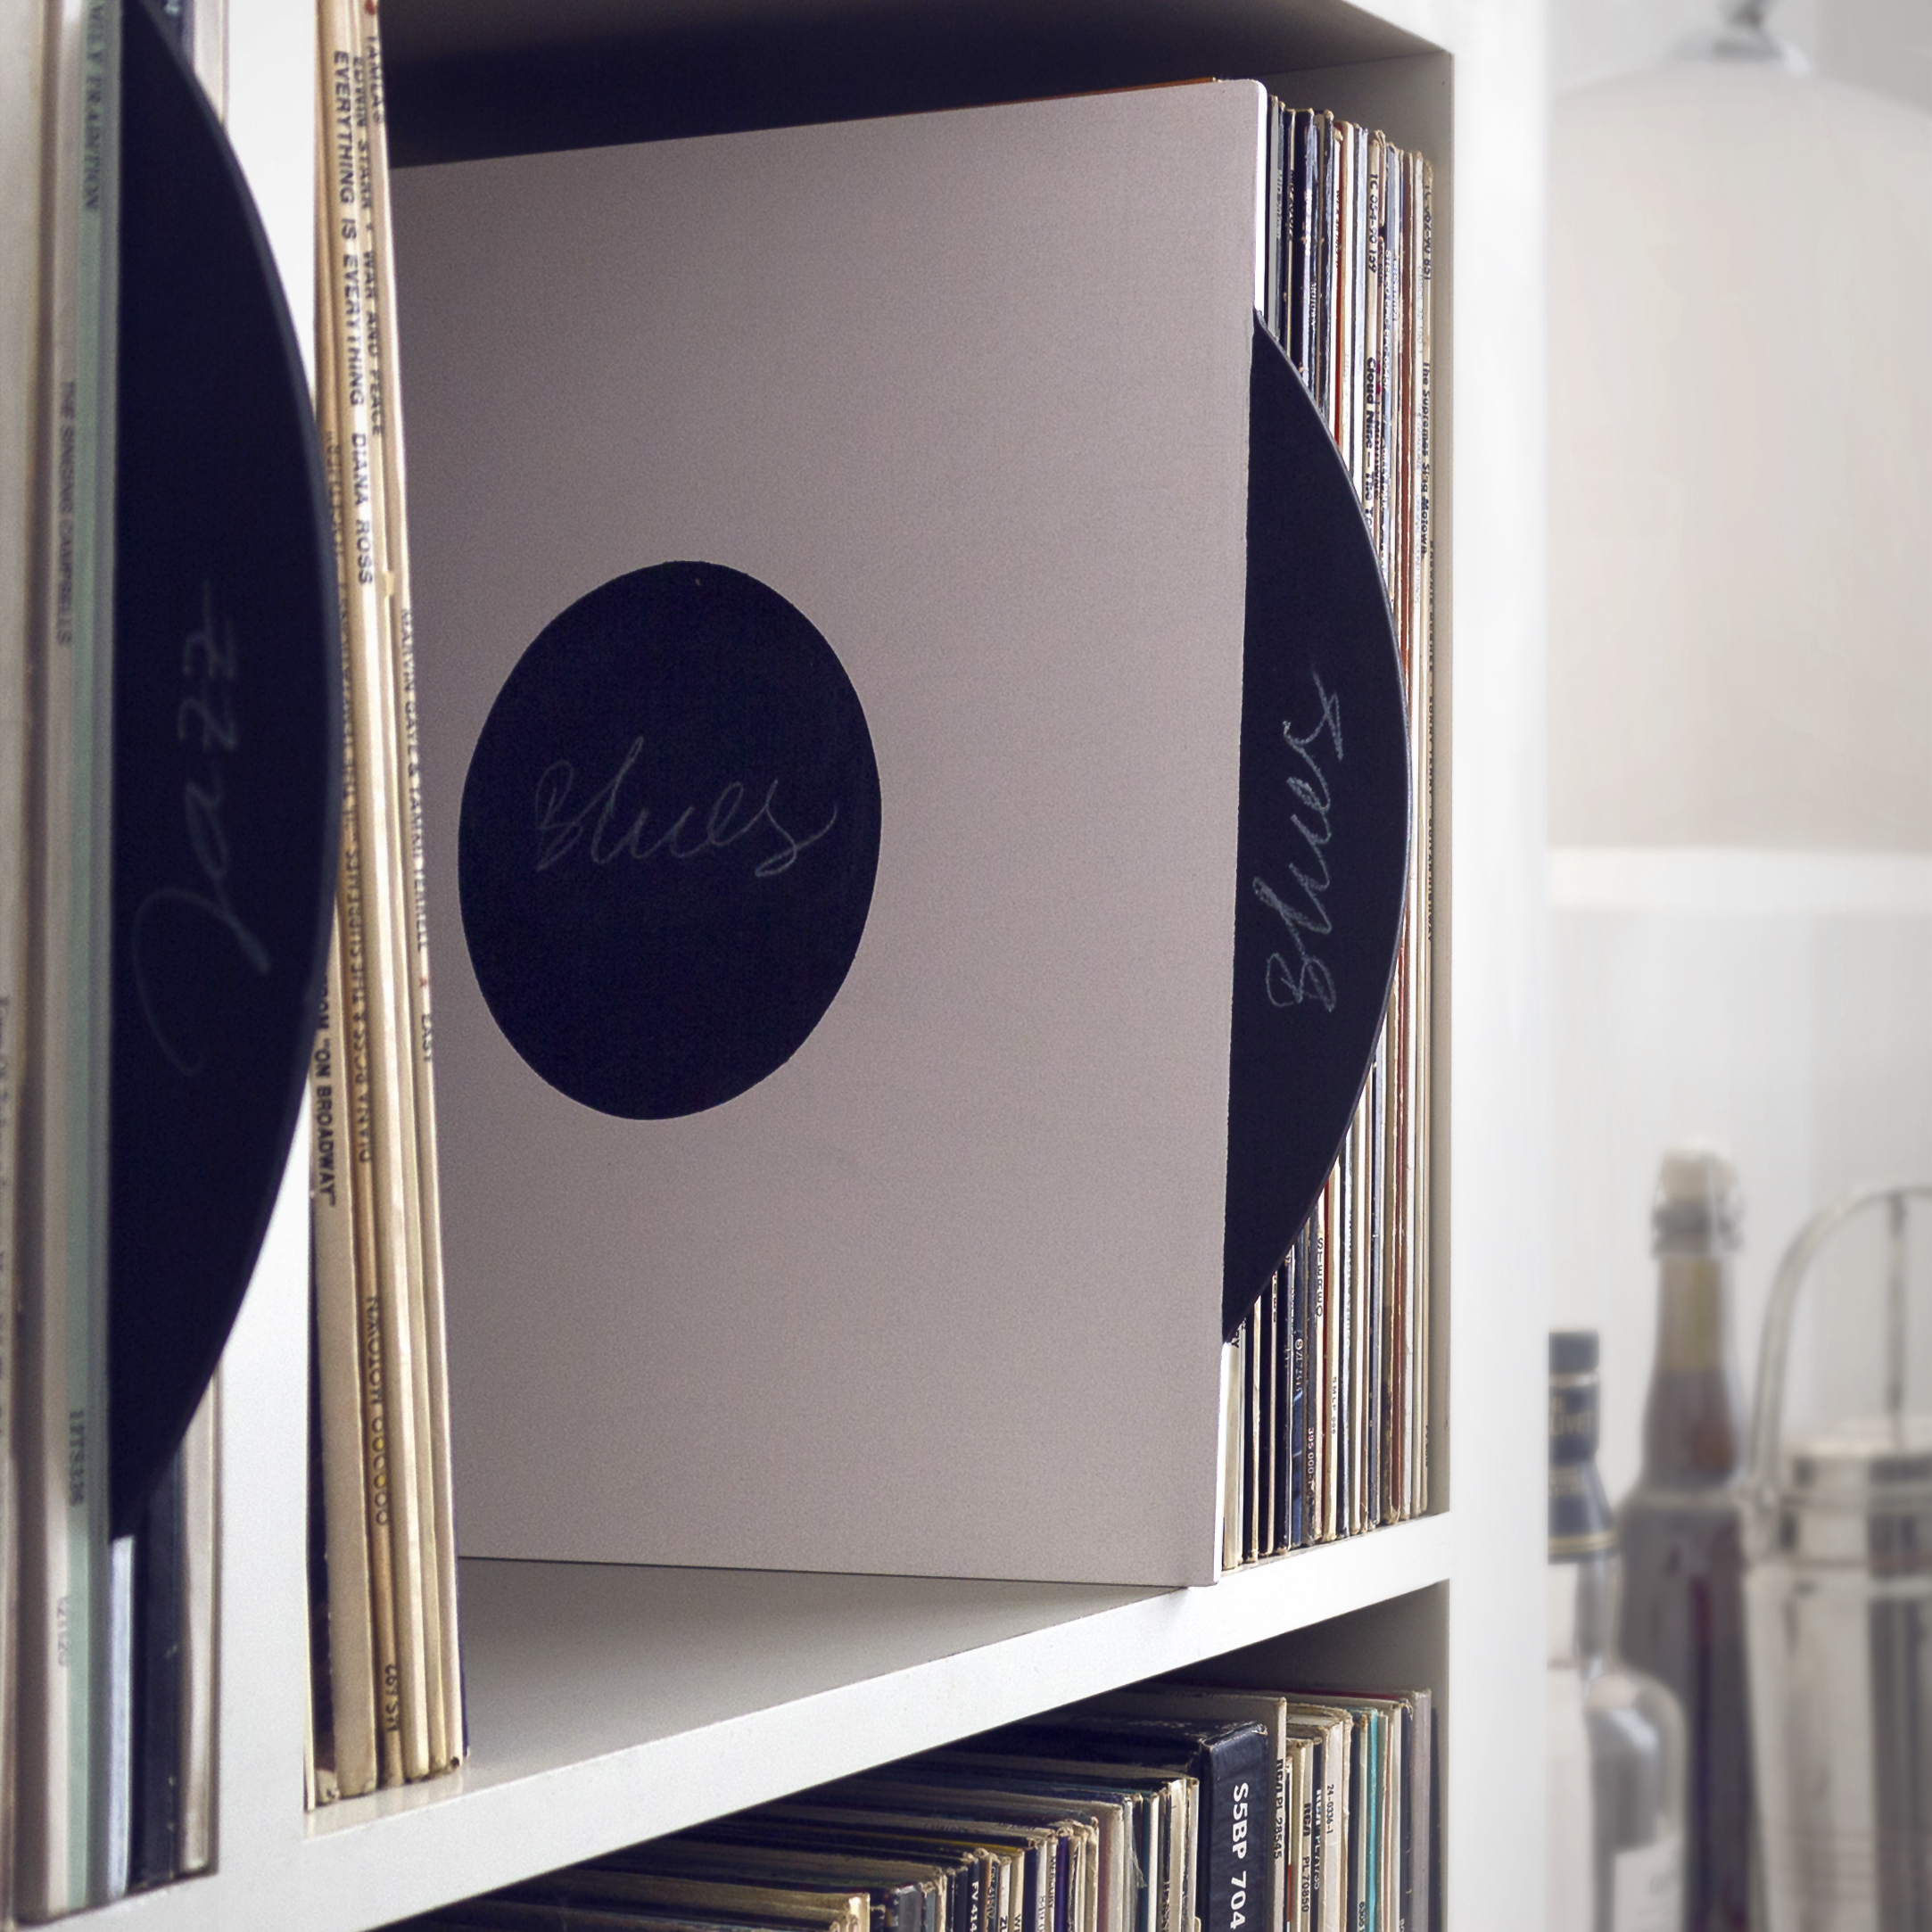 Sonntagsstaat-VinylRegister_mood300.jpg